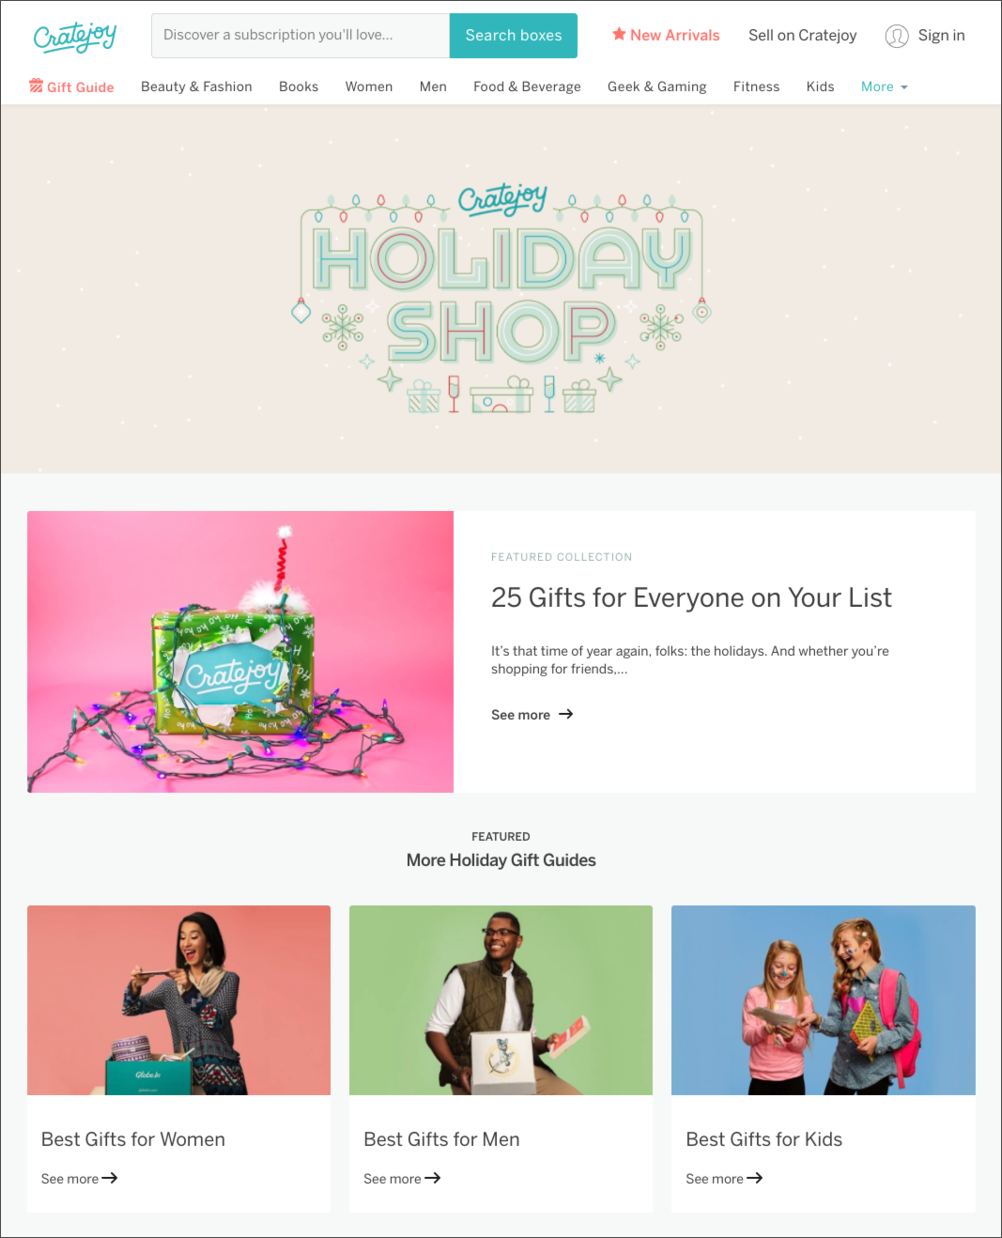 61db5e1e796 5 Downright Impressive Holiday Gift Guides